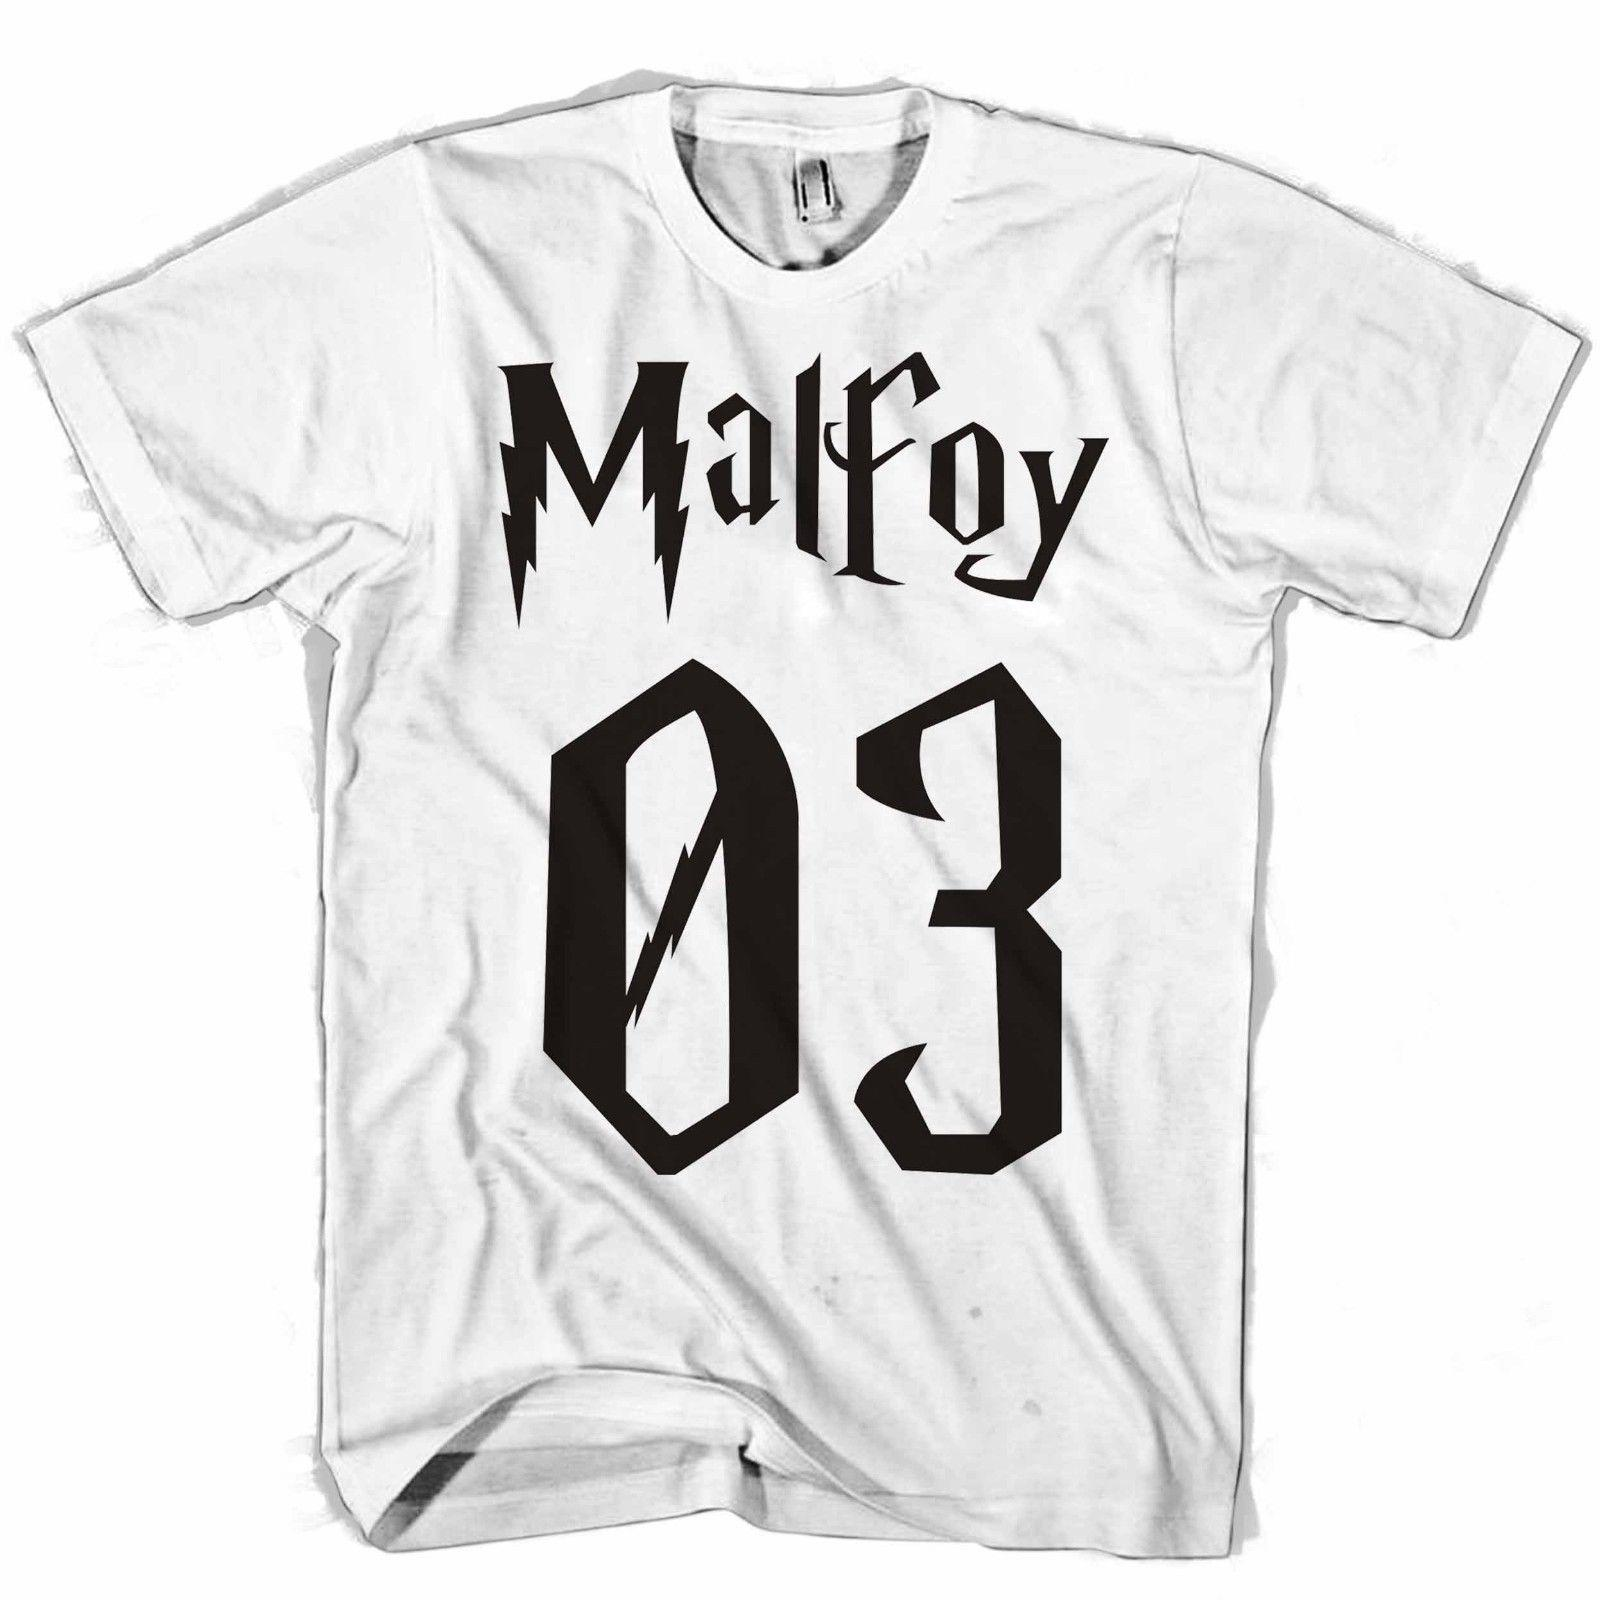 d380f18c Malfoy 03 Harry Potter Men'S / Women'S T ShirtFunny Unisex Casual Tshirt  Top Tees Shirts T Shirt Site From Sg_outlet, $12.96| DHgate.Com